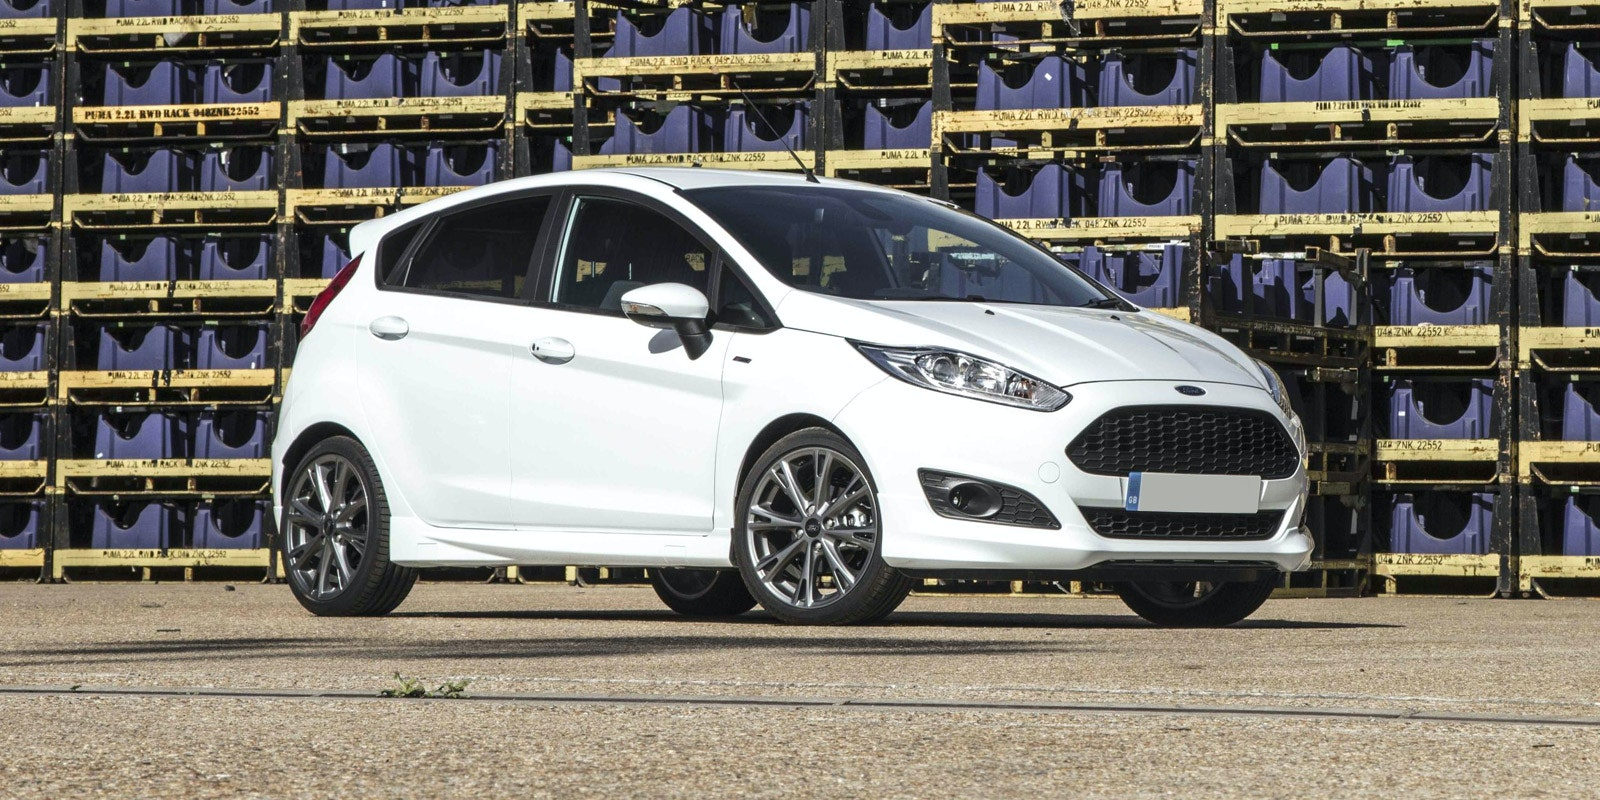 Ford fiesta lead 2.jpg?ixlib=rb 1.1